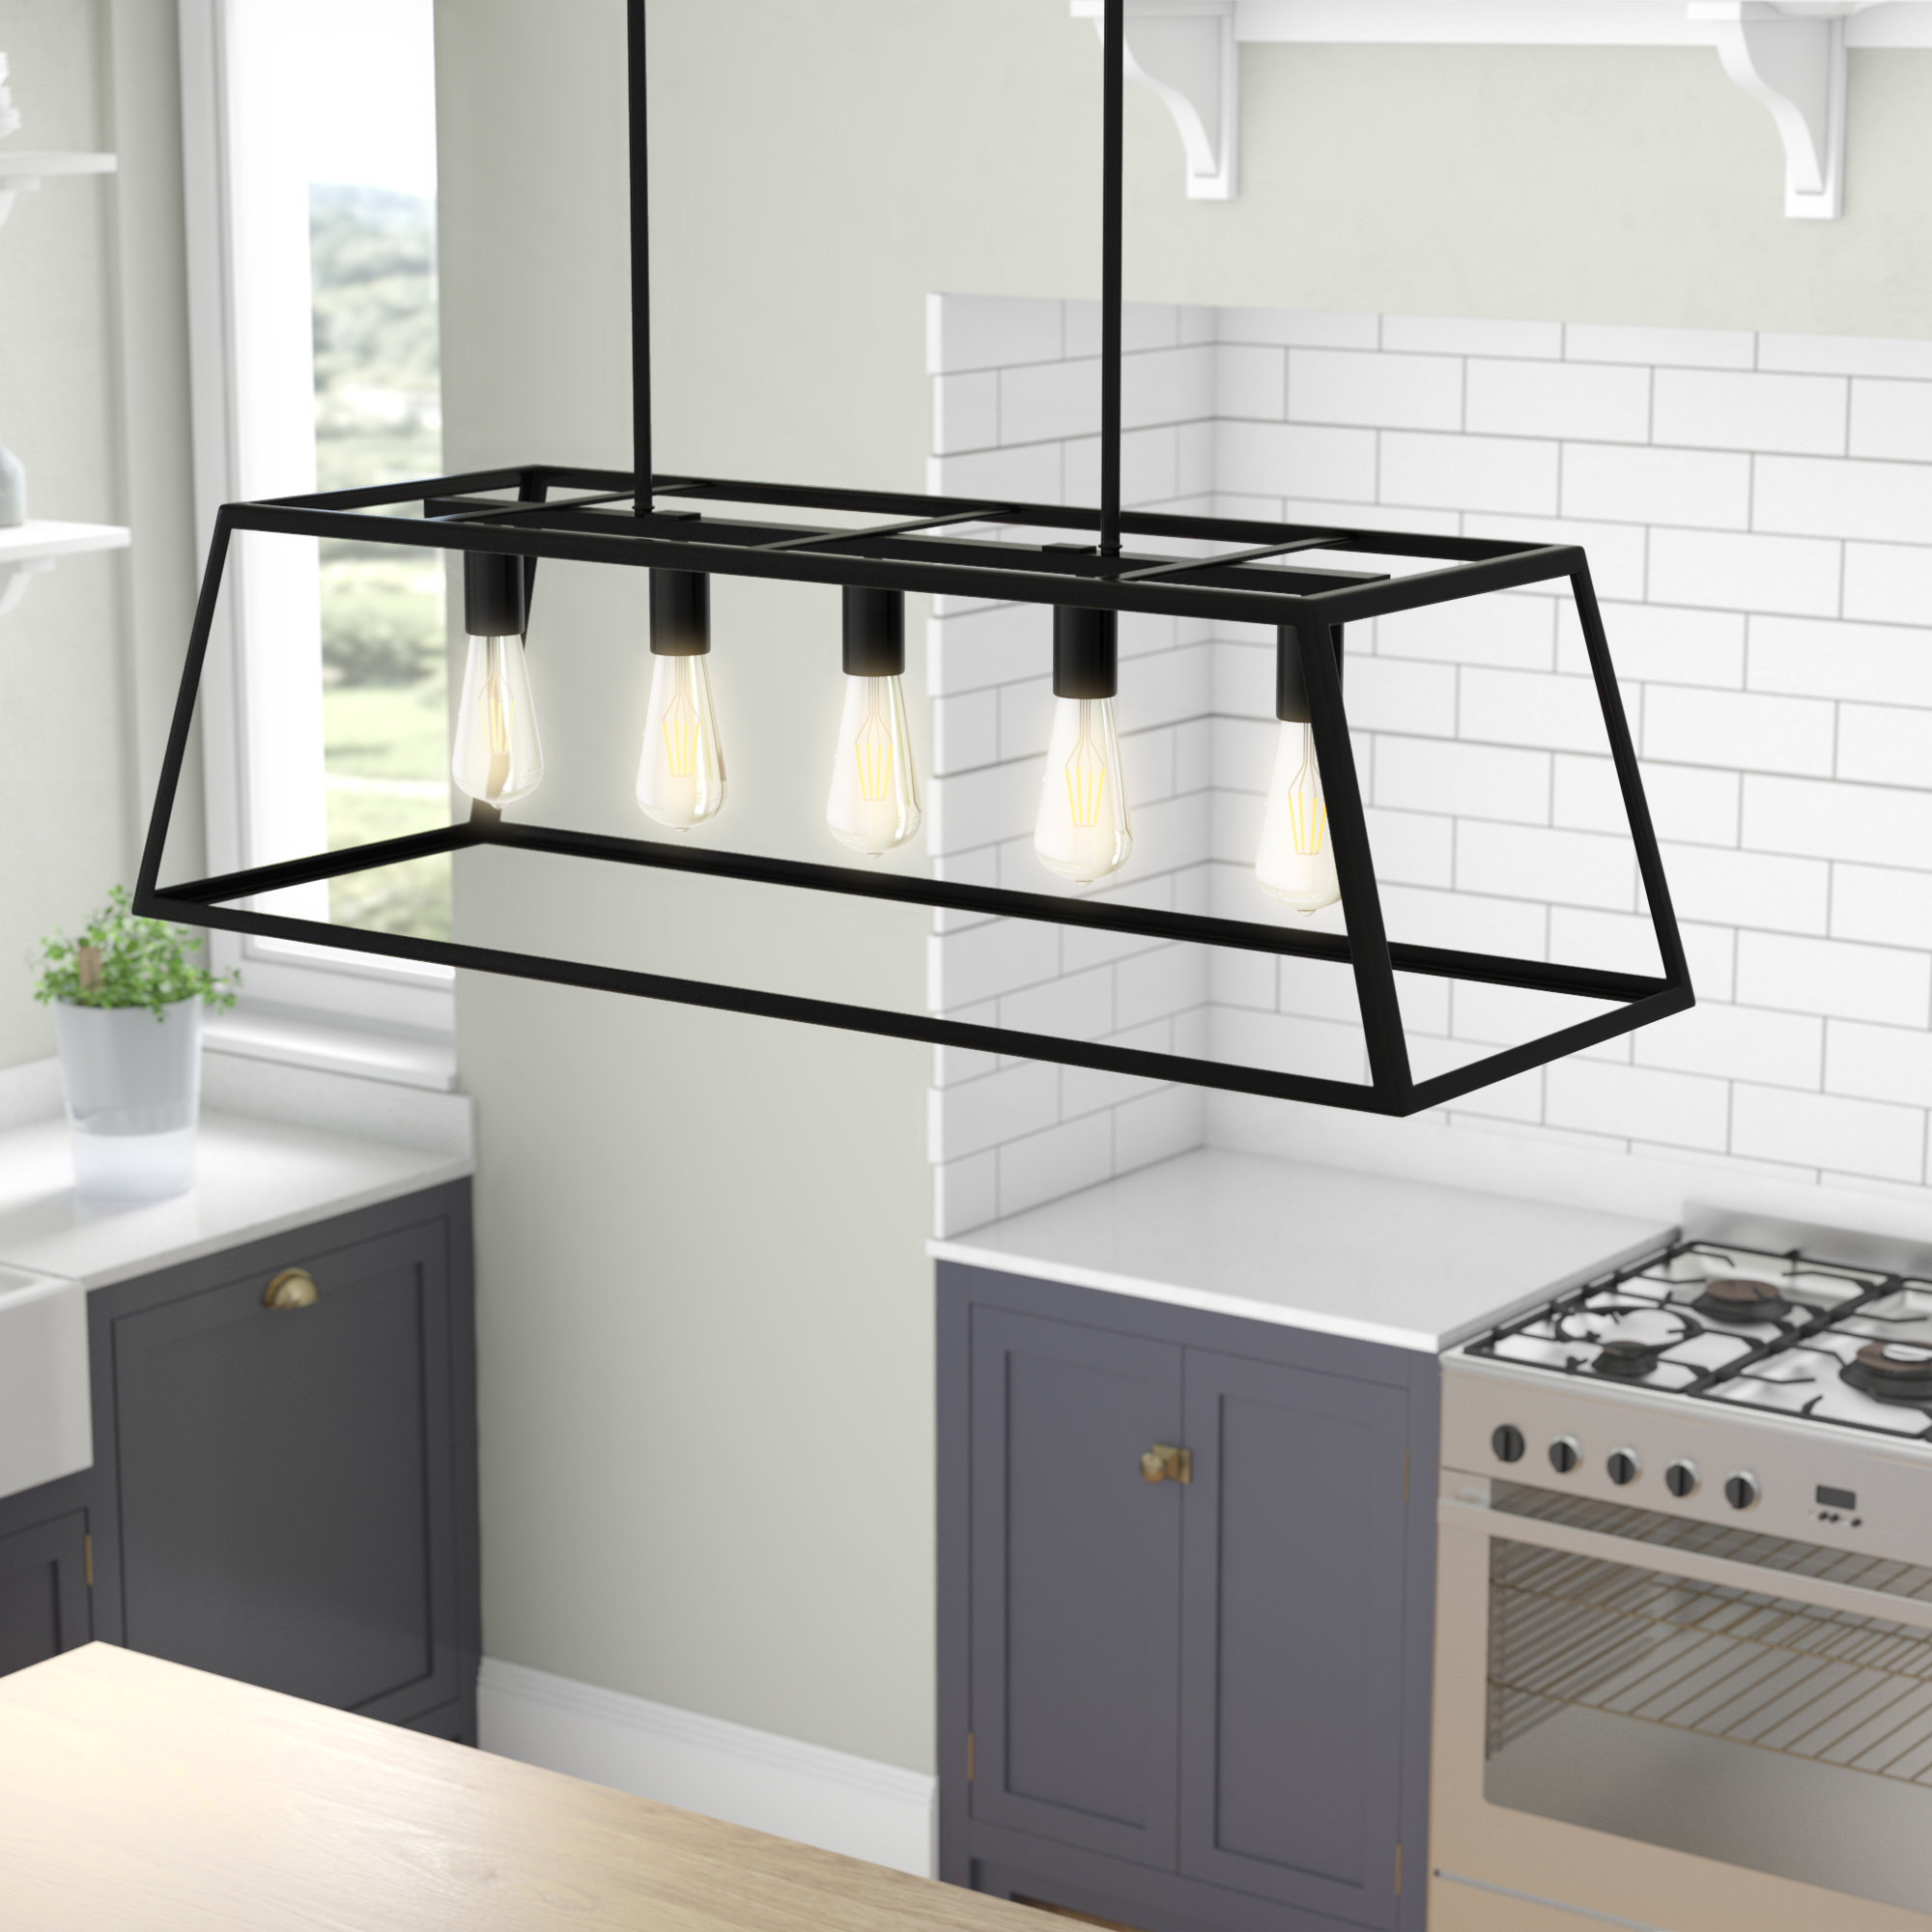 Hinerman 5 Light Kitchen Island Pendants With Regard To Preferred Gracie Oaks Wicklund 5 Light Kitchen Island Pendant (View 5 of 20)